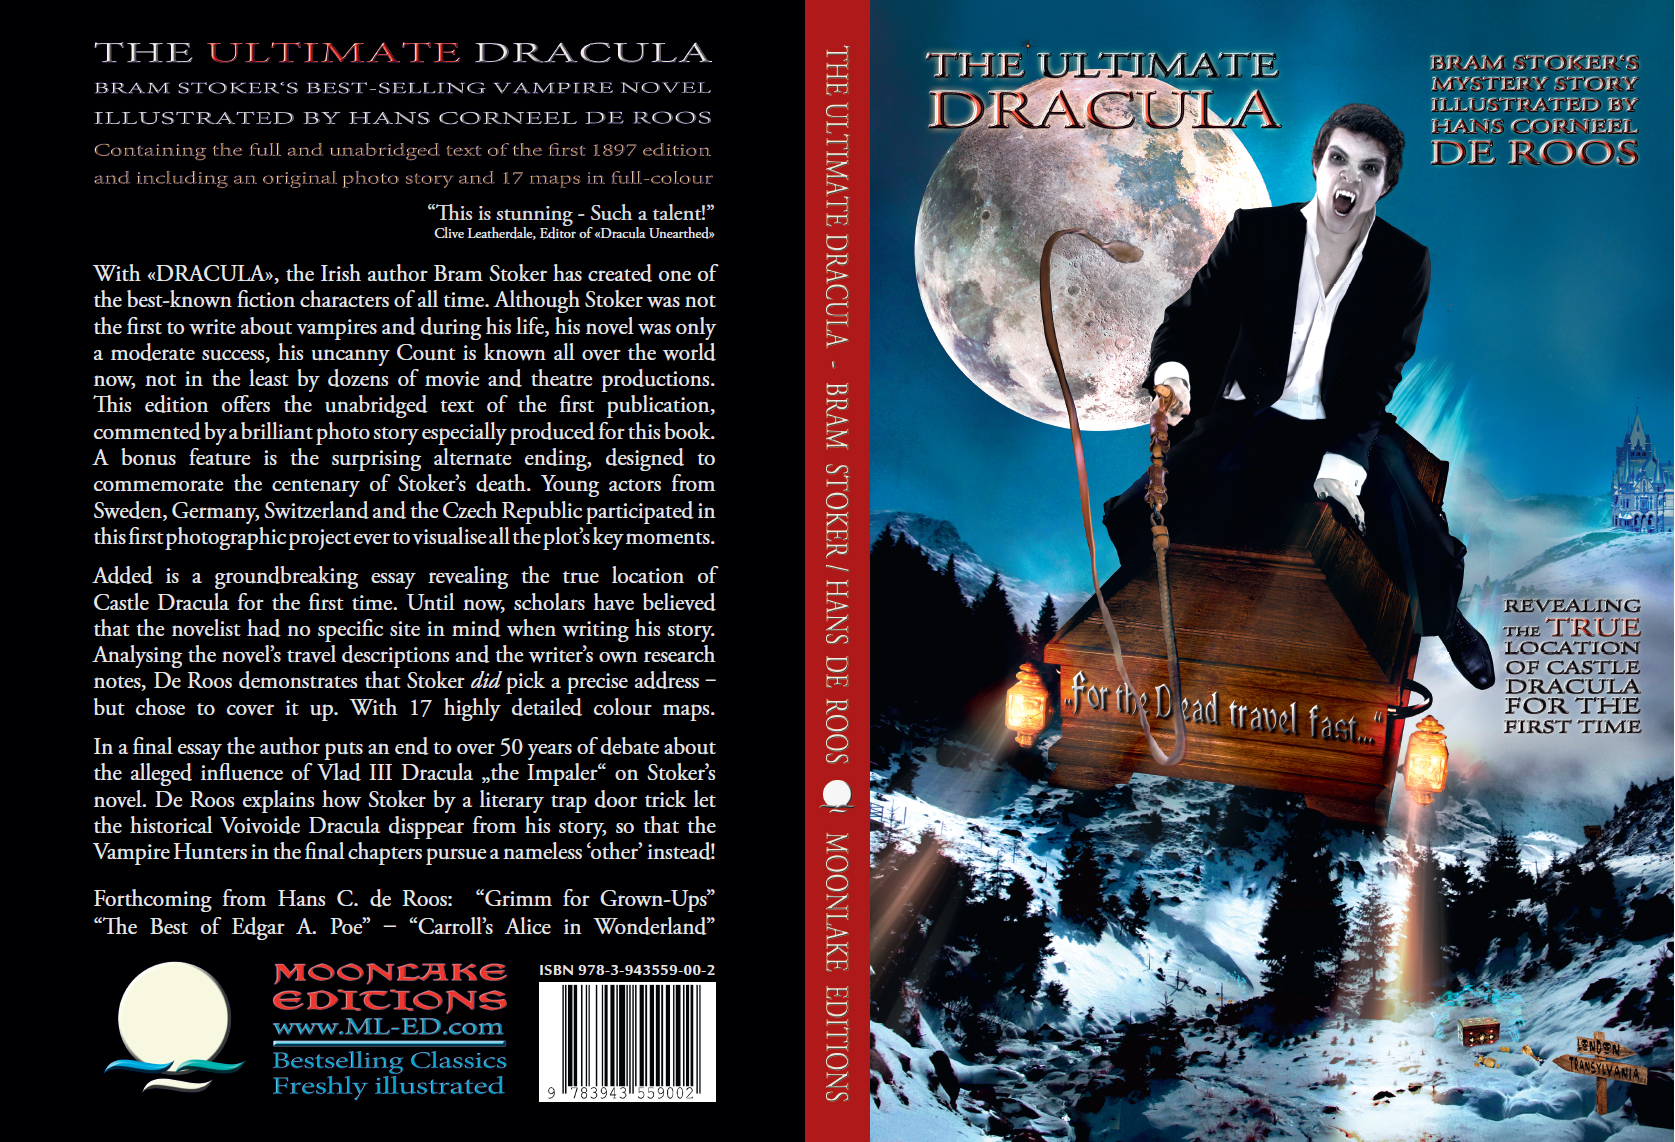 content contents the complete text of bram stokers dracula novel 1897 edition glossary three essays 17 full page and double page maps ca